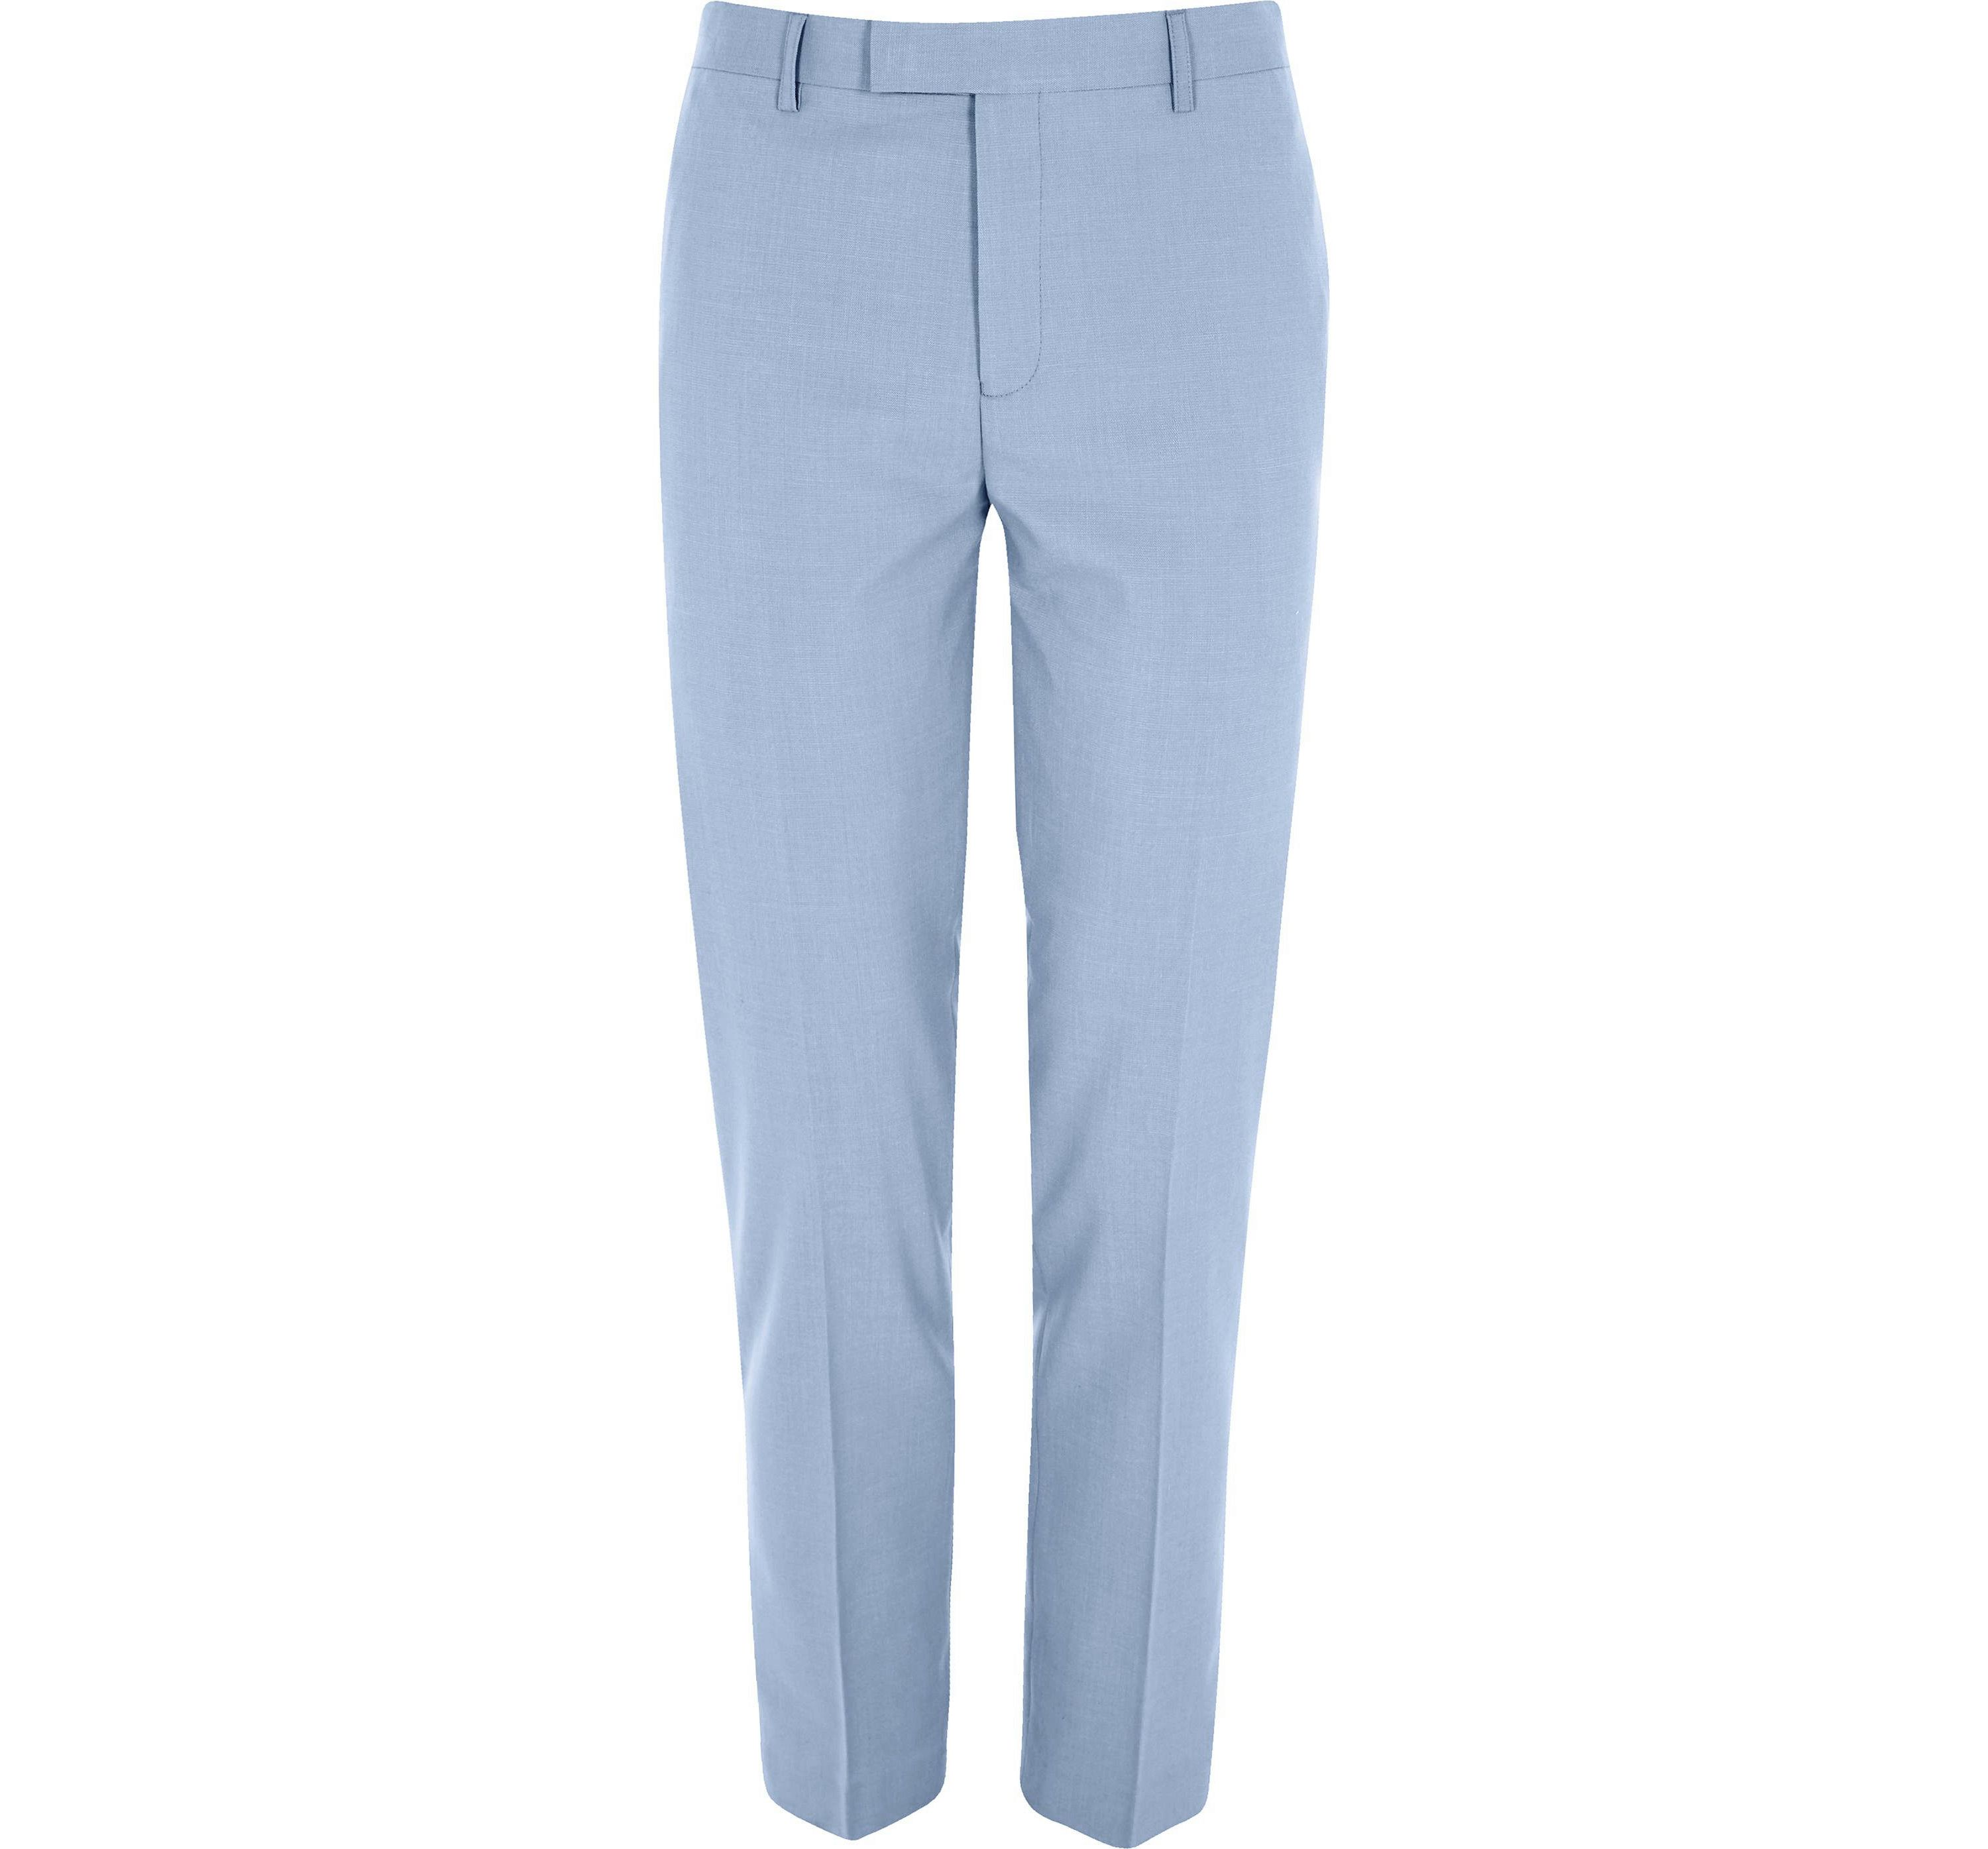 River Island Mens Blue skinny suit trousers